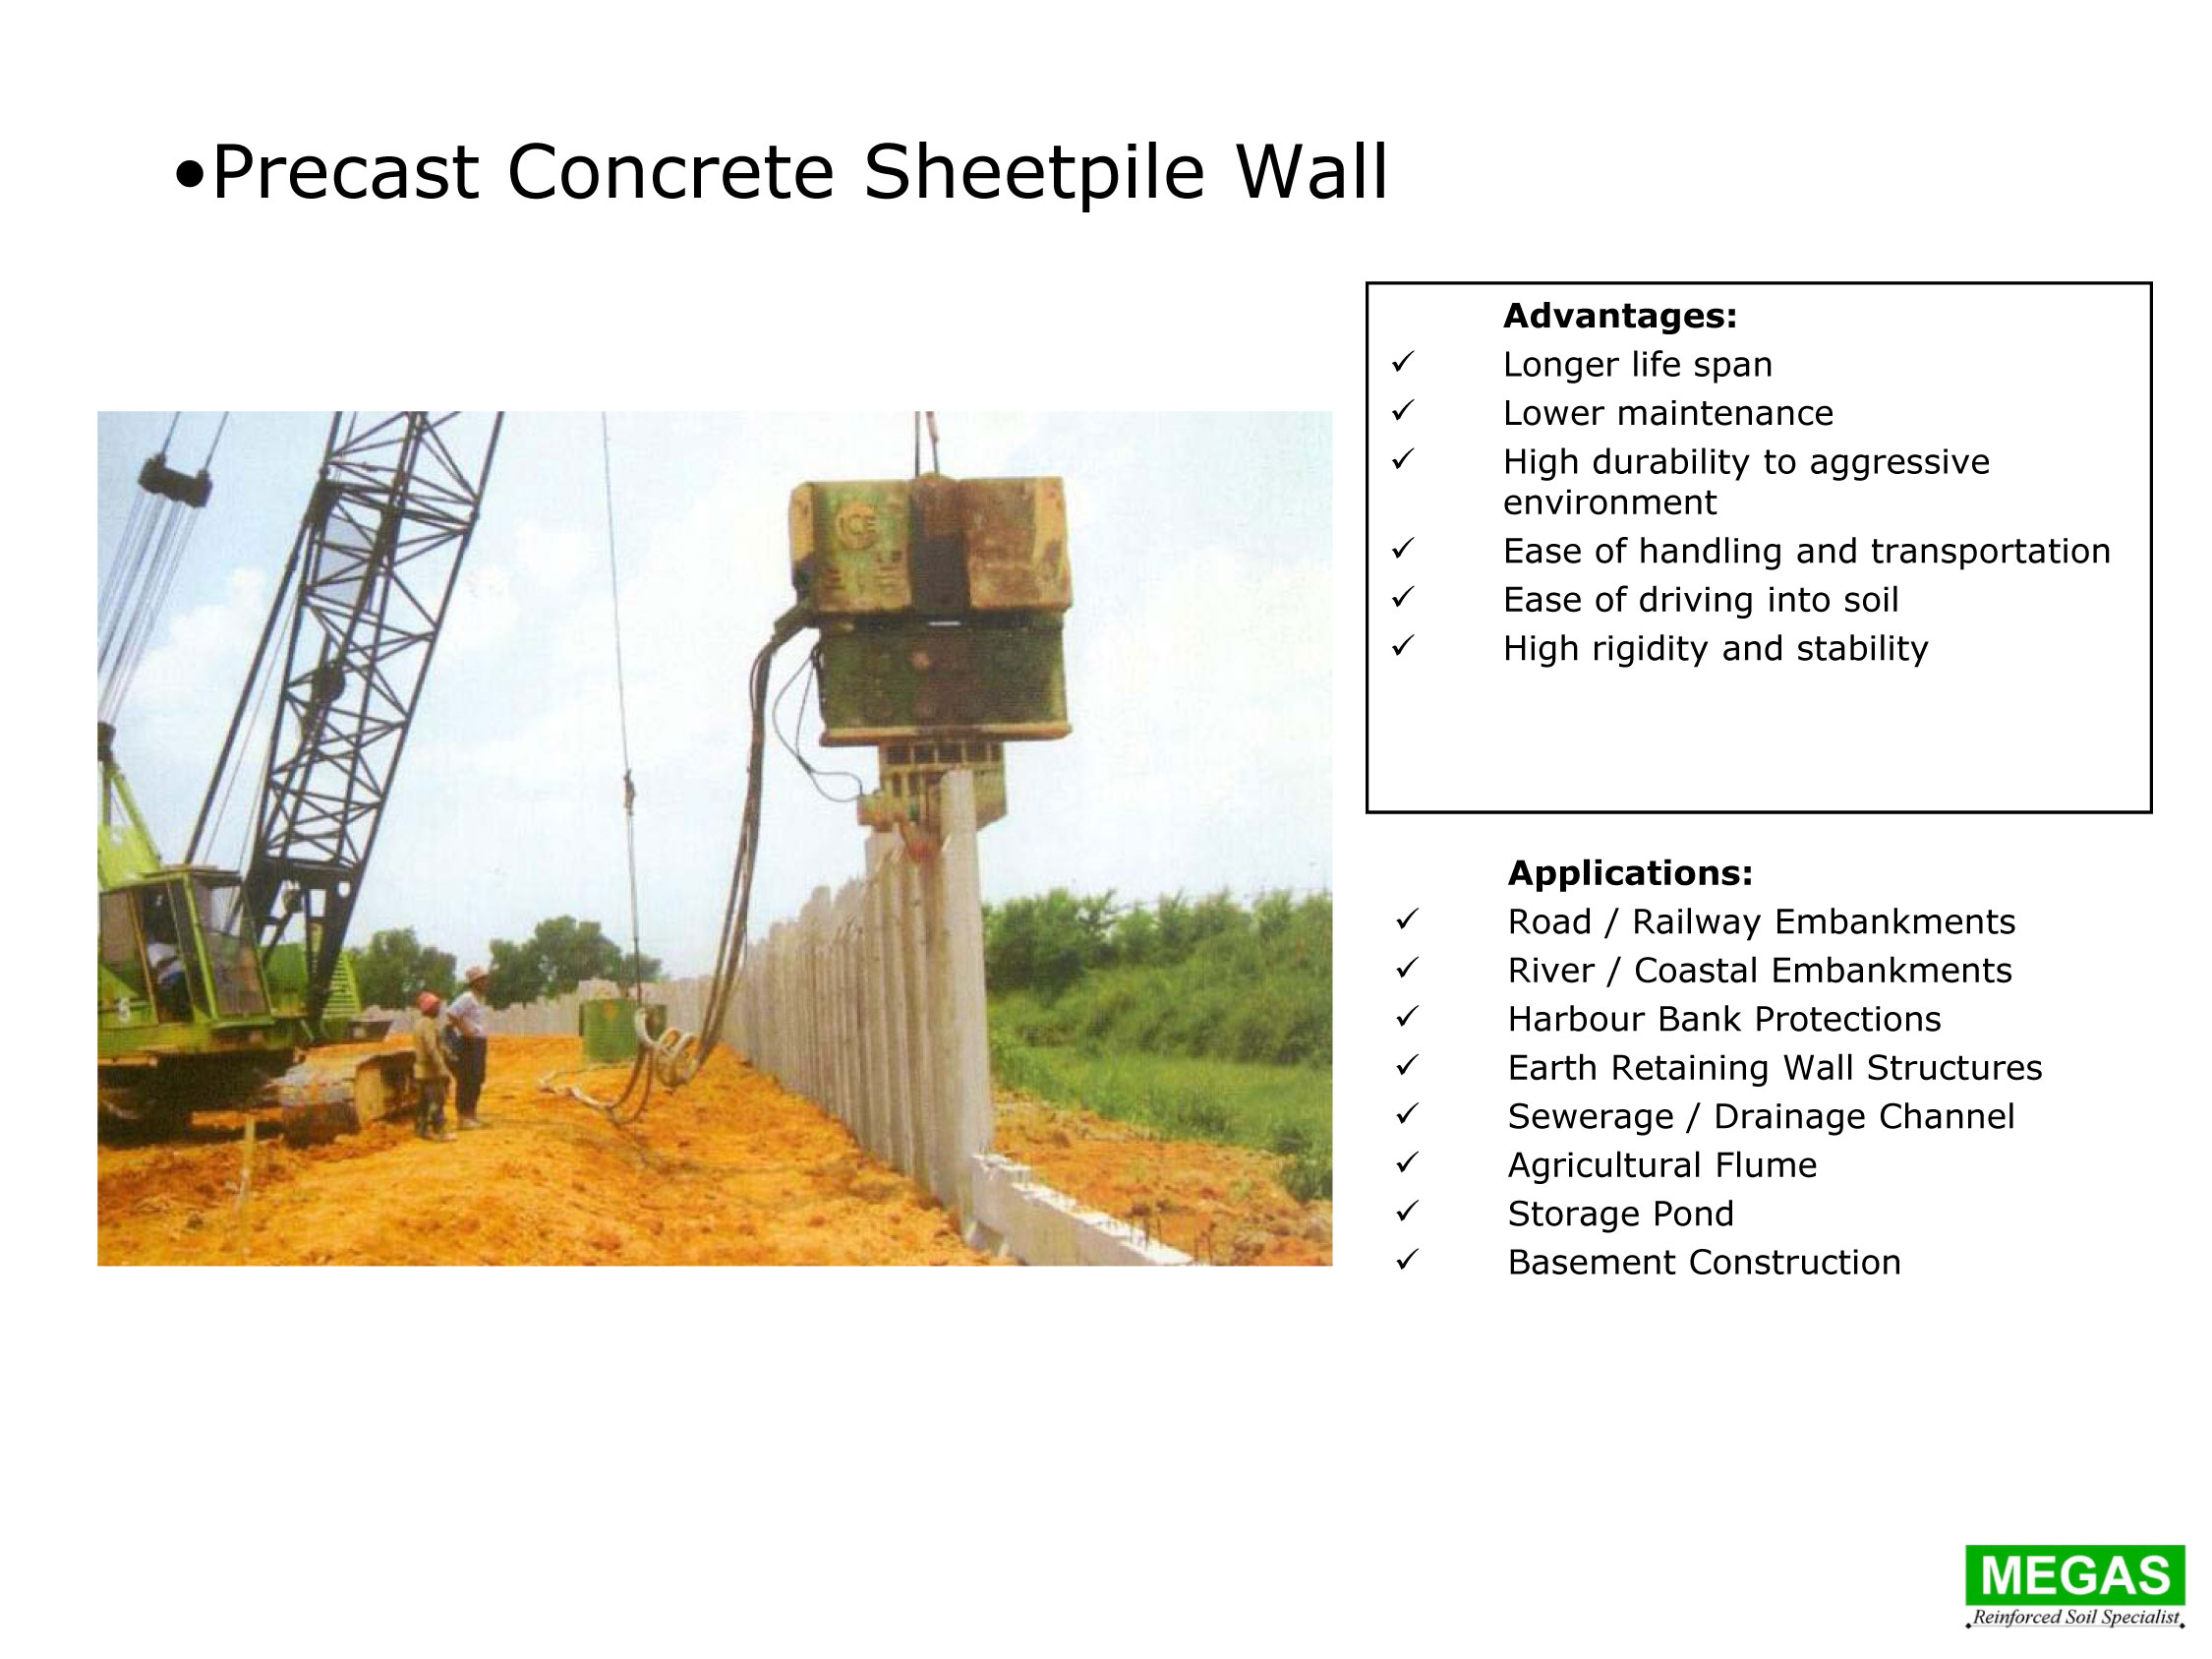 Precast Concrete Sheetpile Wall